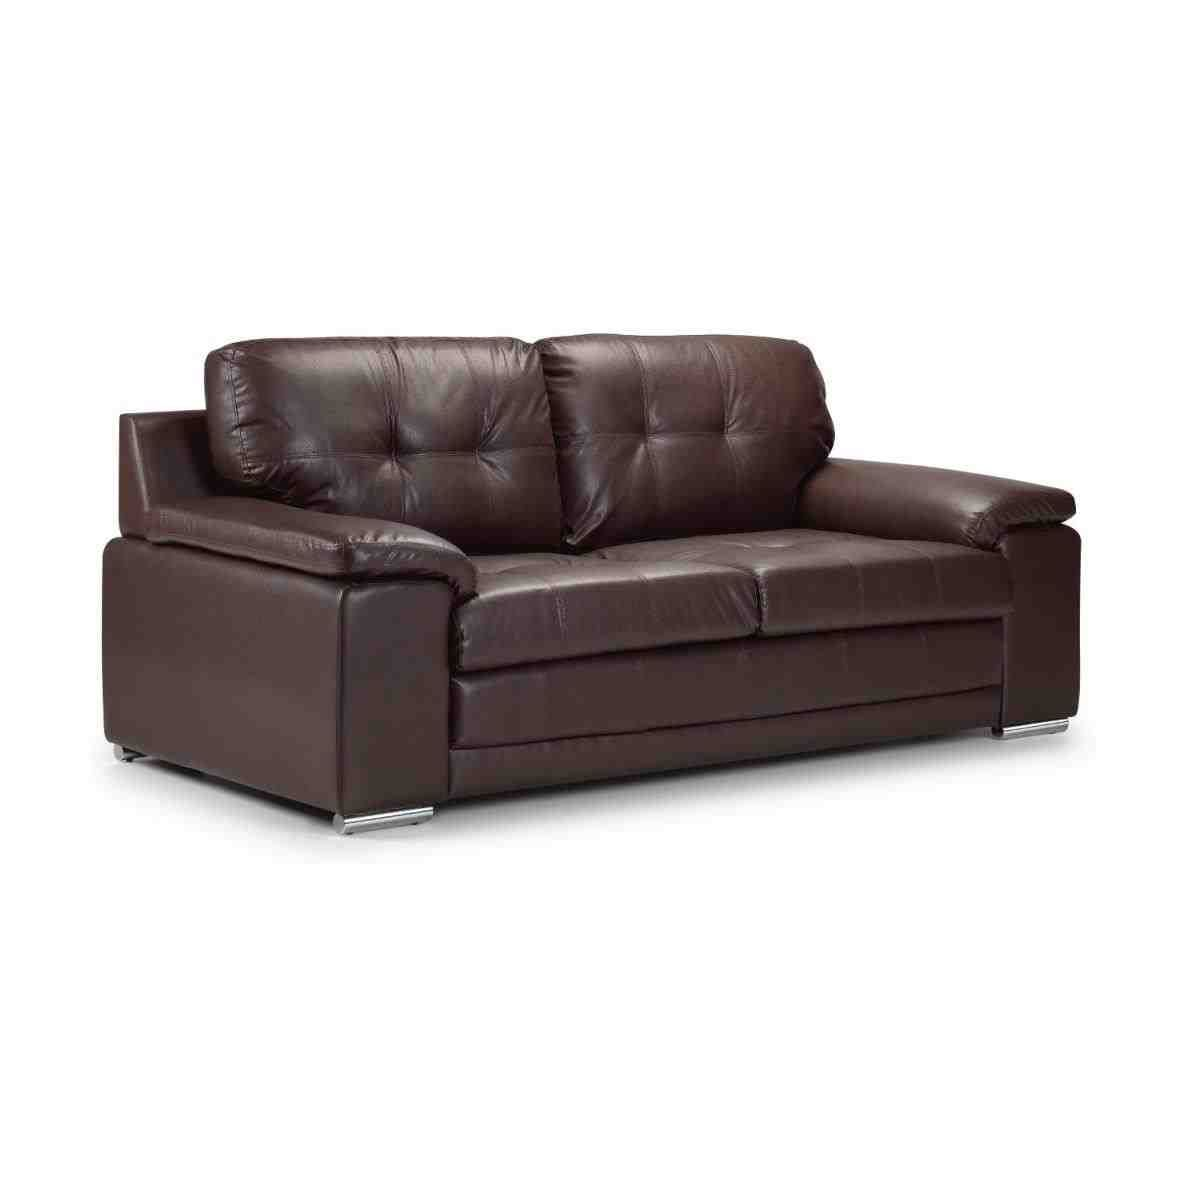 Leather Sofas In London Luxury Italian Uk Sofa Beds Brands Furniture